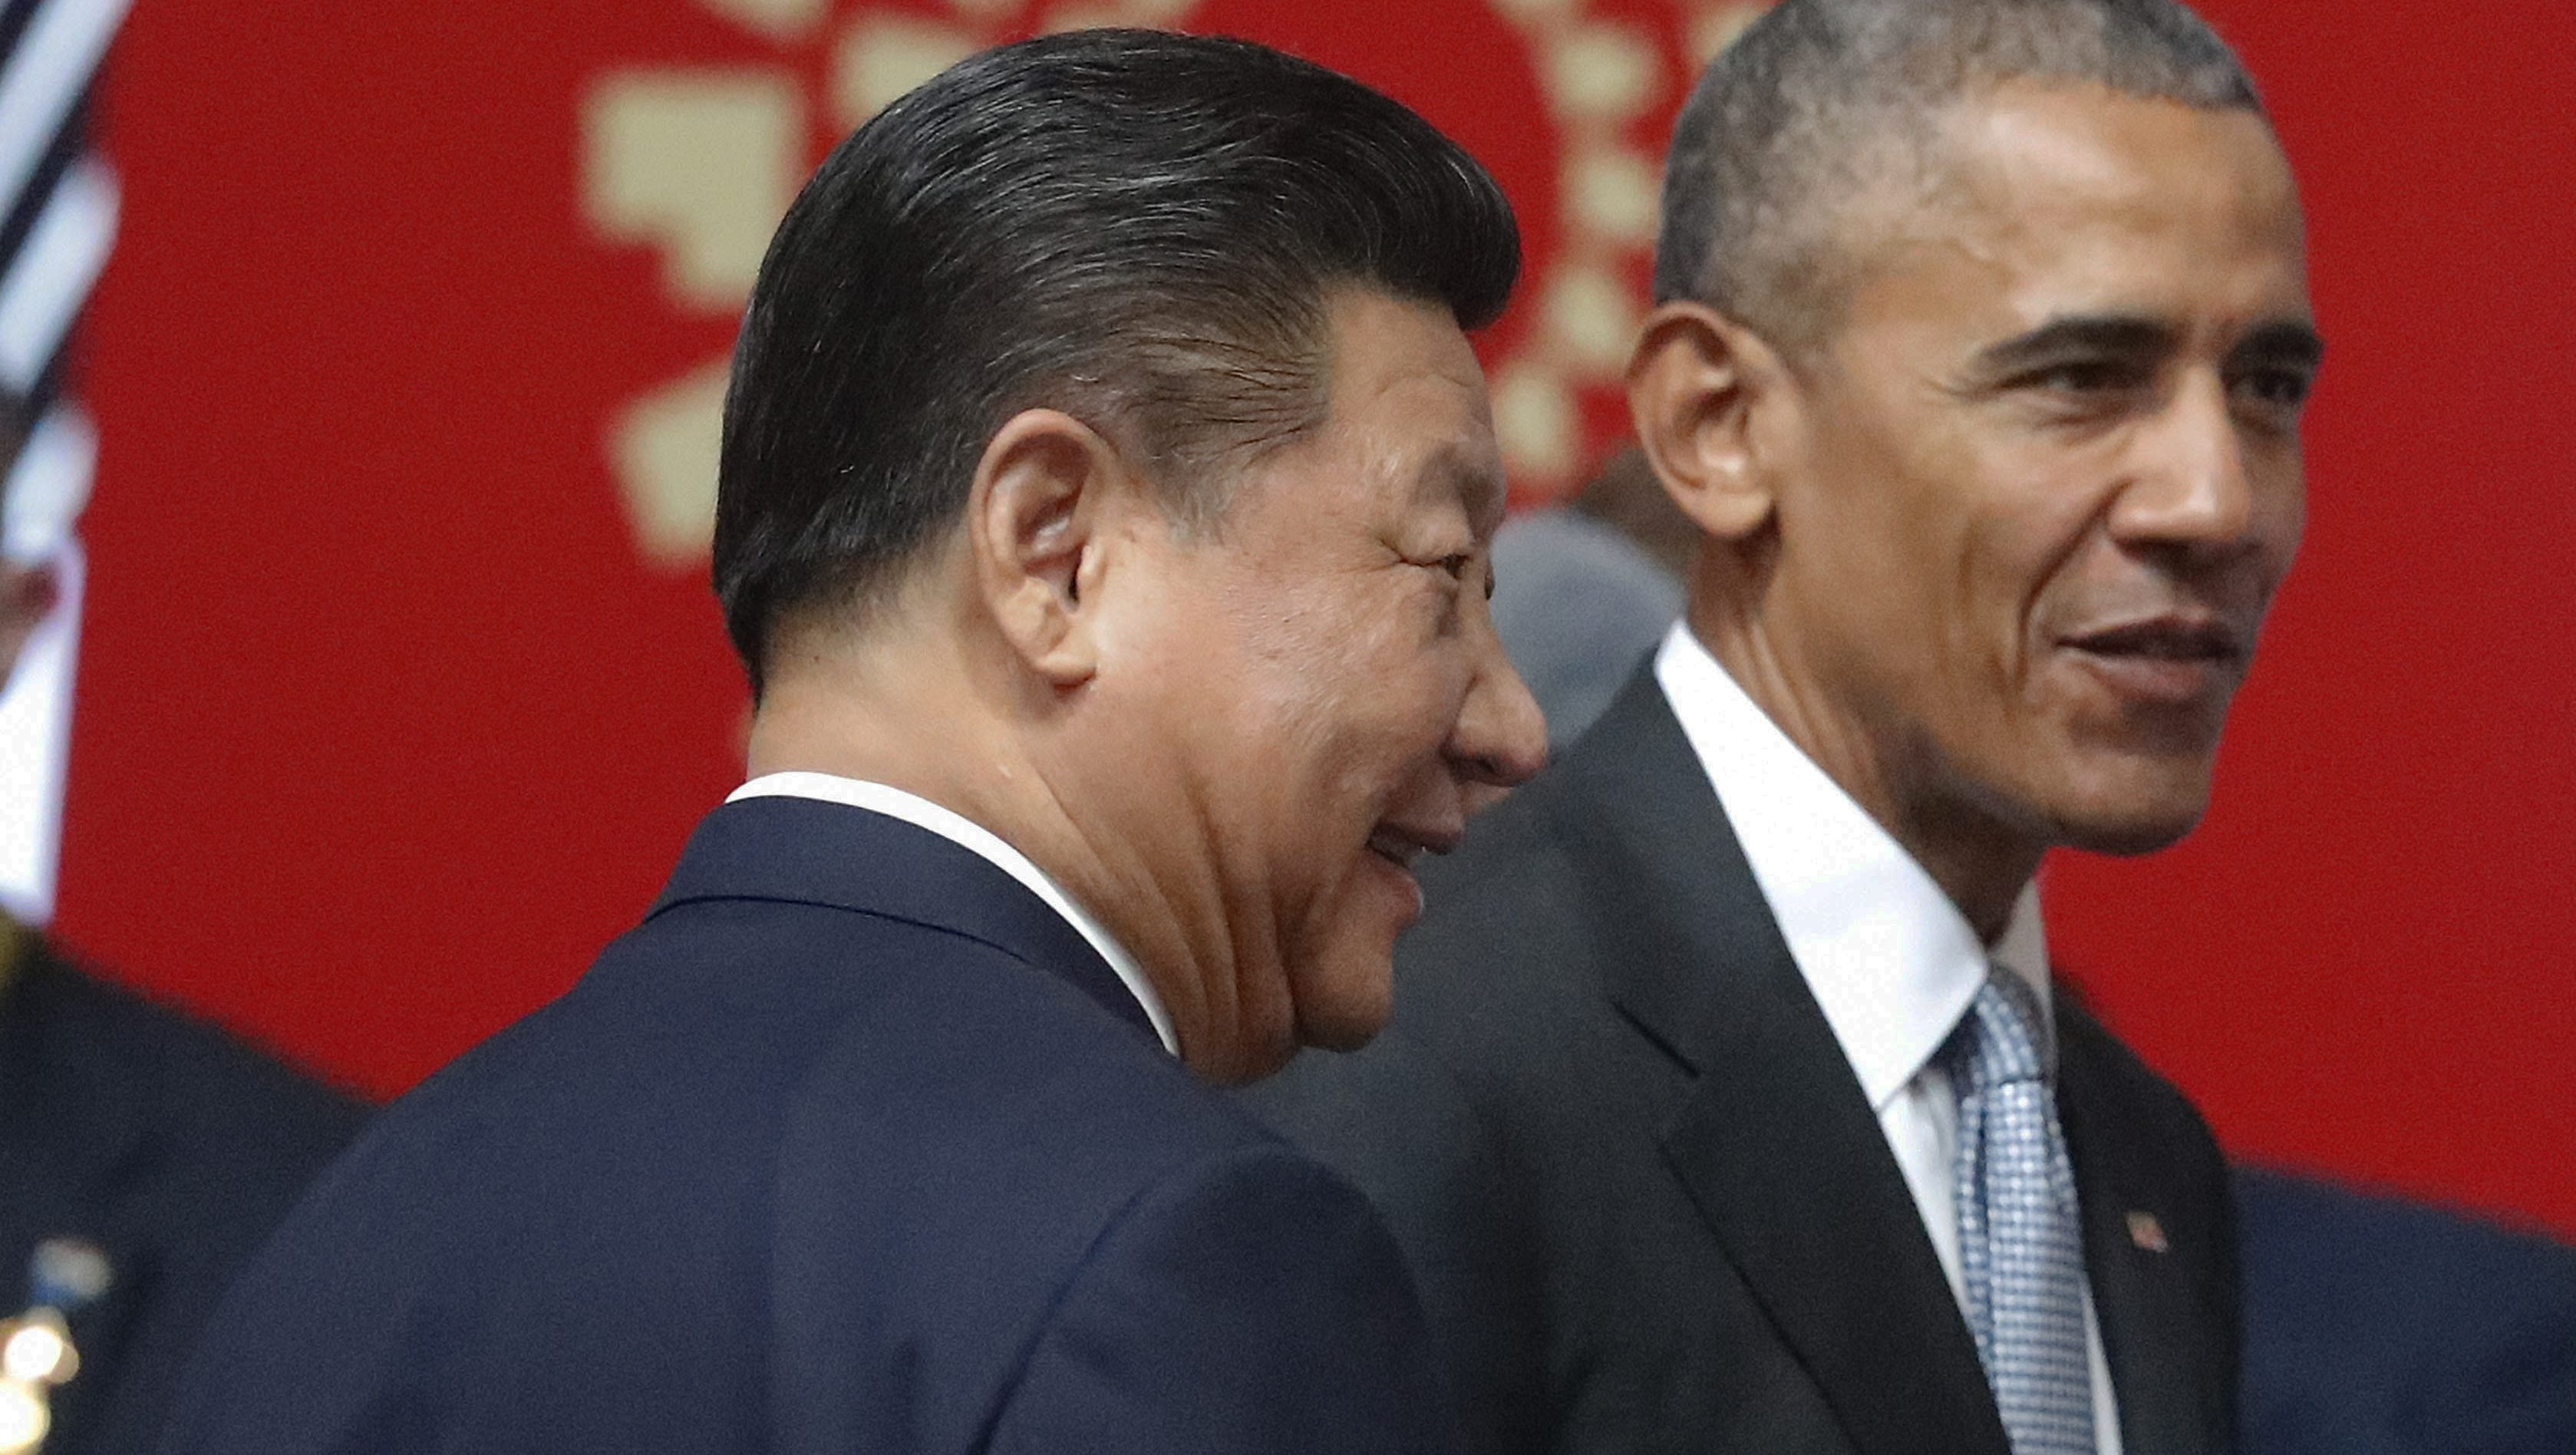 U.S. President Barack Obama, right, and China's President Xi Jinping, left, at the opening session of the Asia-Pacific Economic Cooperation (APEC) in Lima, Peru, Sunday, Nov. 20, 2016. (AP Photo/Pablo Martinez Monsivais)